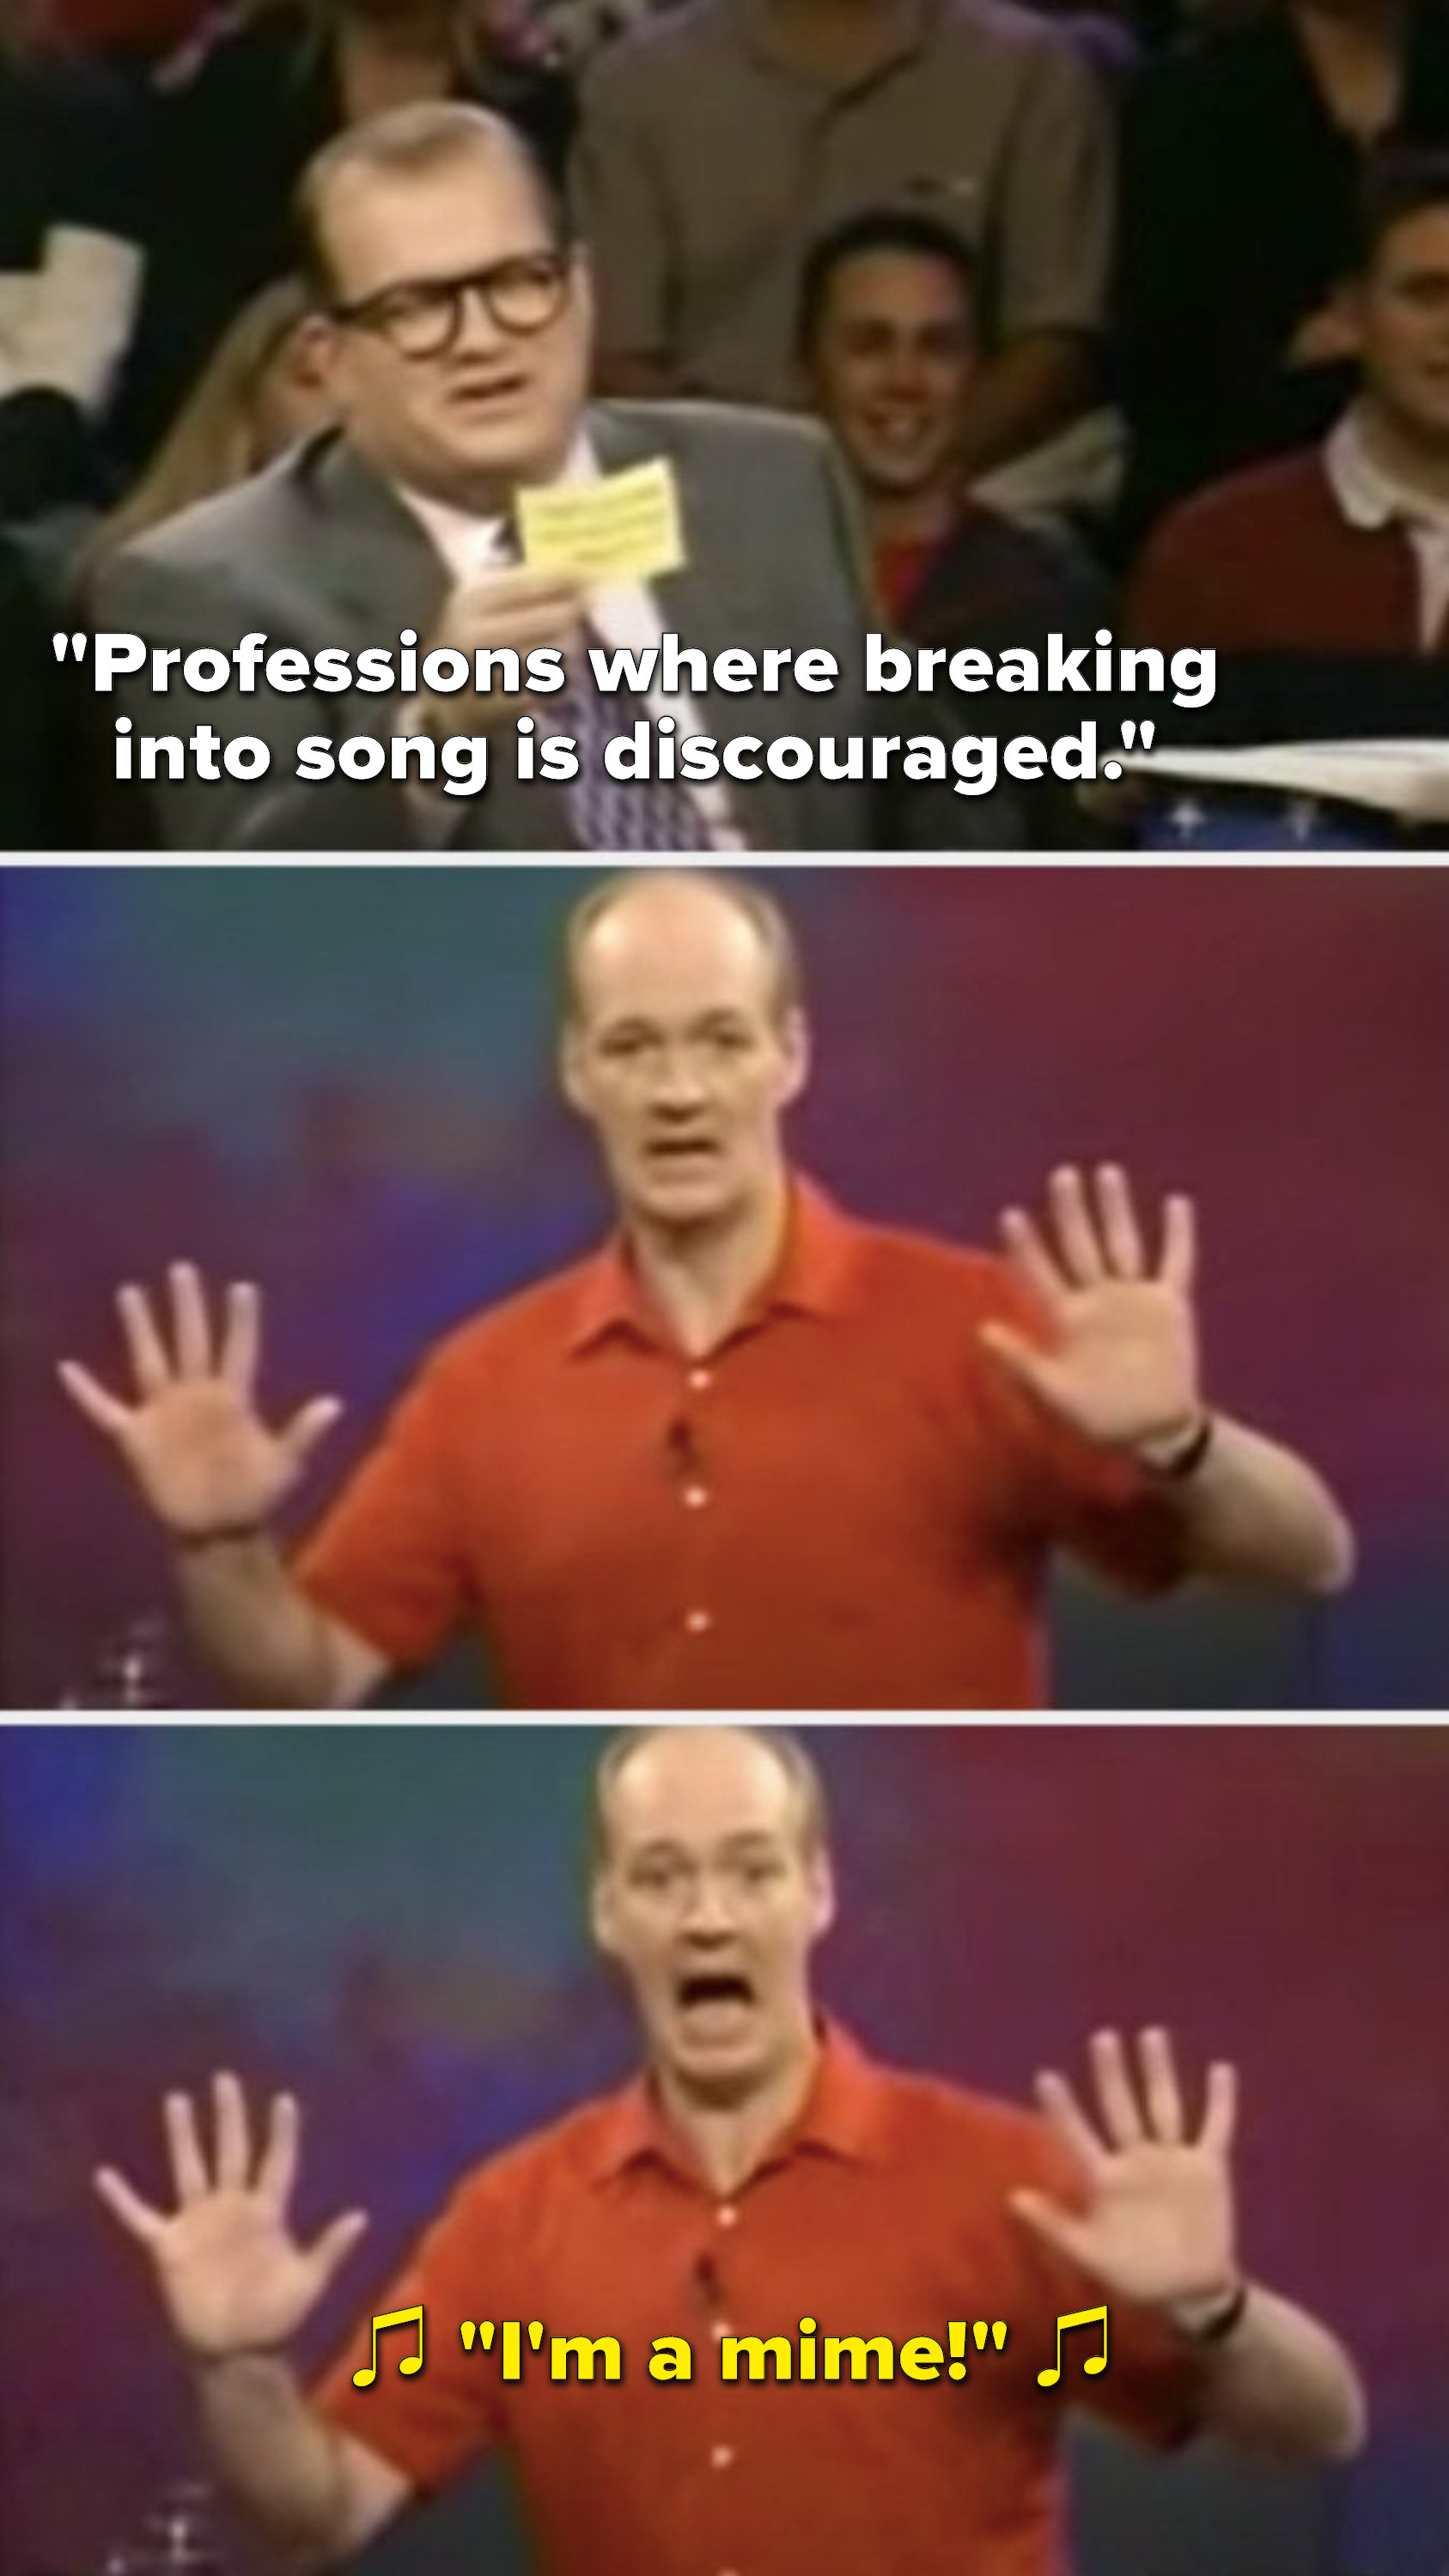 """Carey says, """"Professions where breaking into song is discouraged,"""" and Mochrie puts his hands up in front of him perpendicular to the ground and sings, """"I'm a mime"""""""